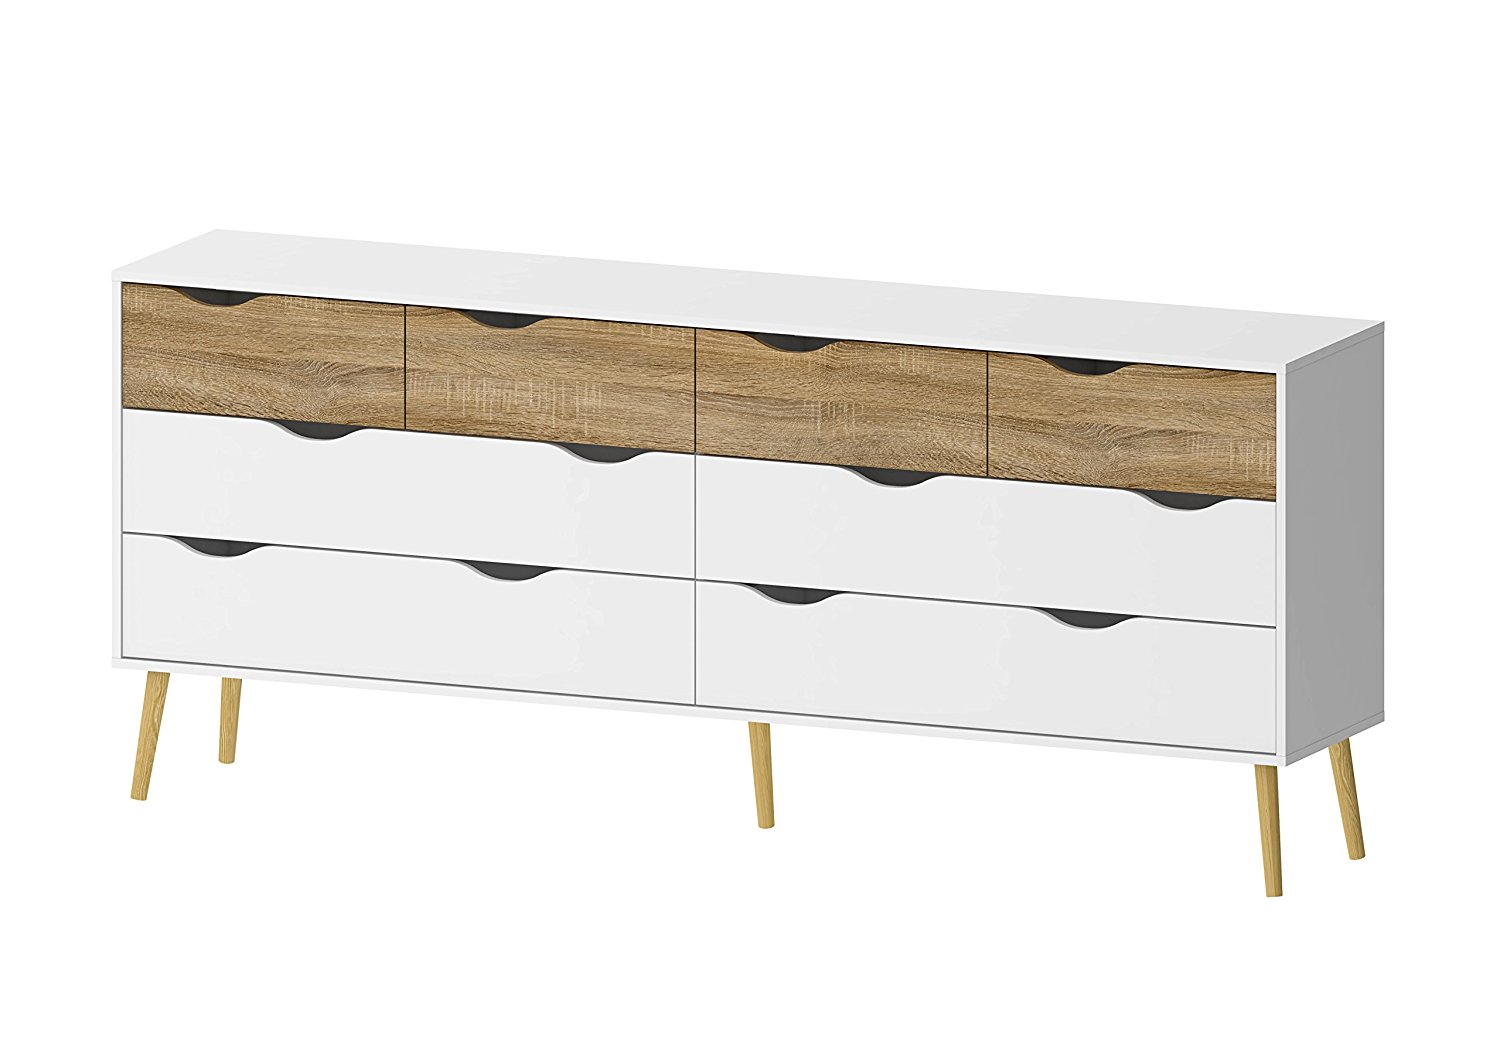 Tvilum 7545549ak Diana 8 Drawer Dresser, White/Oak Structure